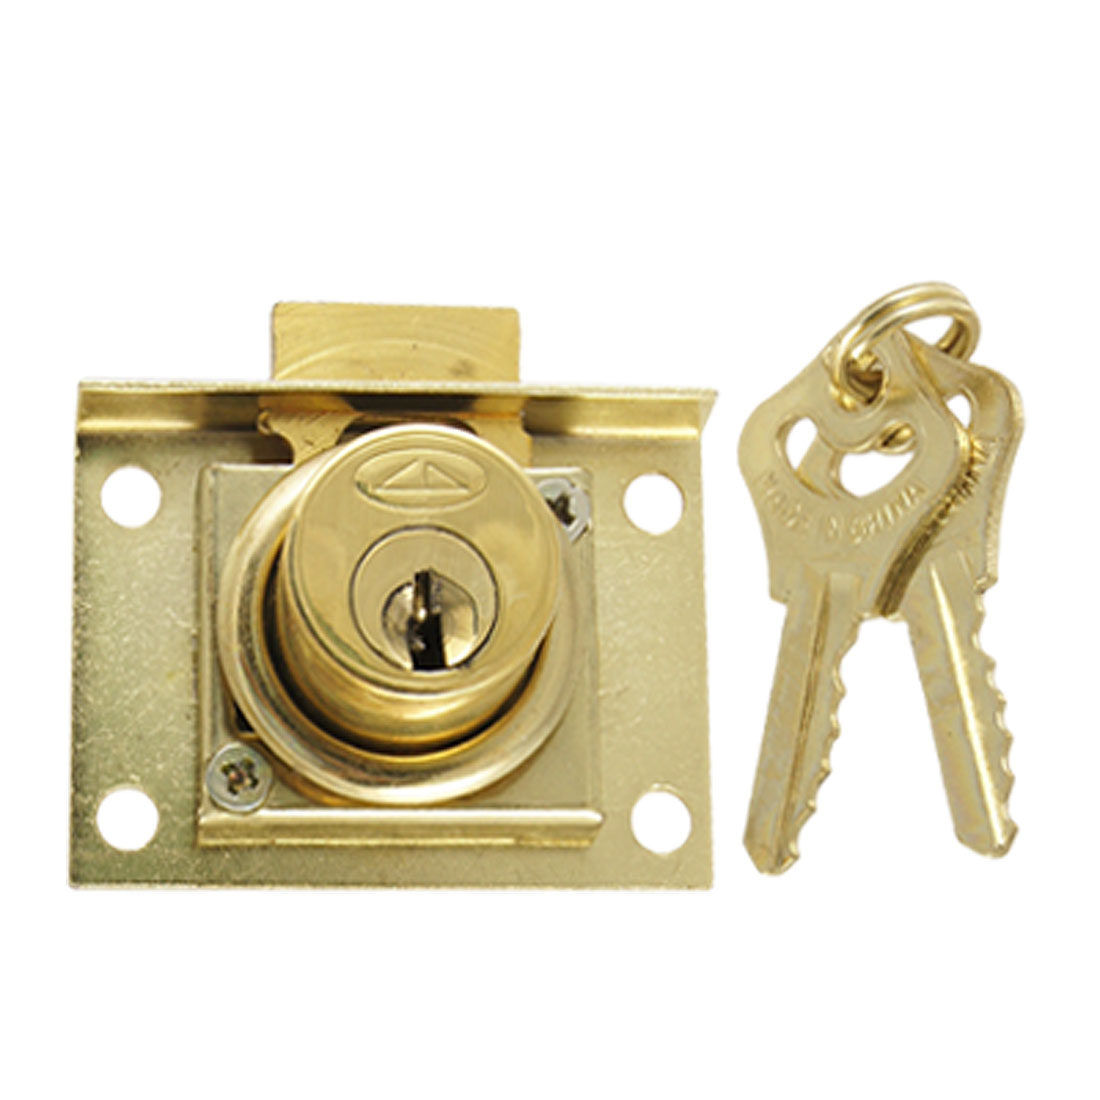 "Quarter Turn Drawer 4/5"" Diameter Cylinder Lock w Keys"